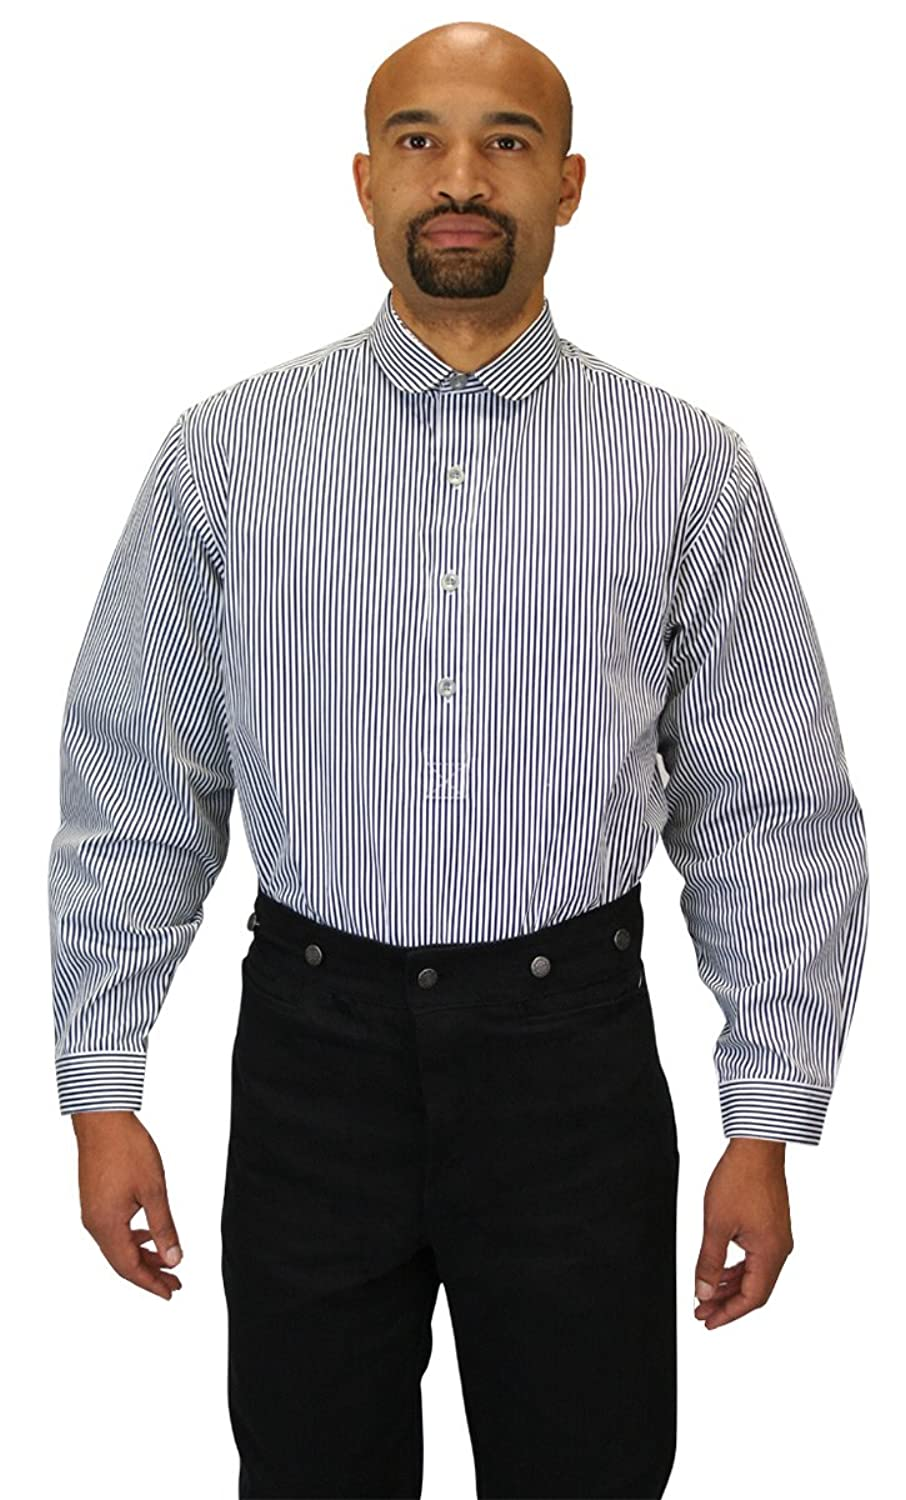 Victorian Men's Clothing Coulter Edwardian Club Collar Dress Shirt $59.95 AT vintagedancer.com